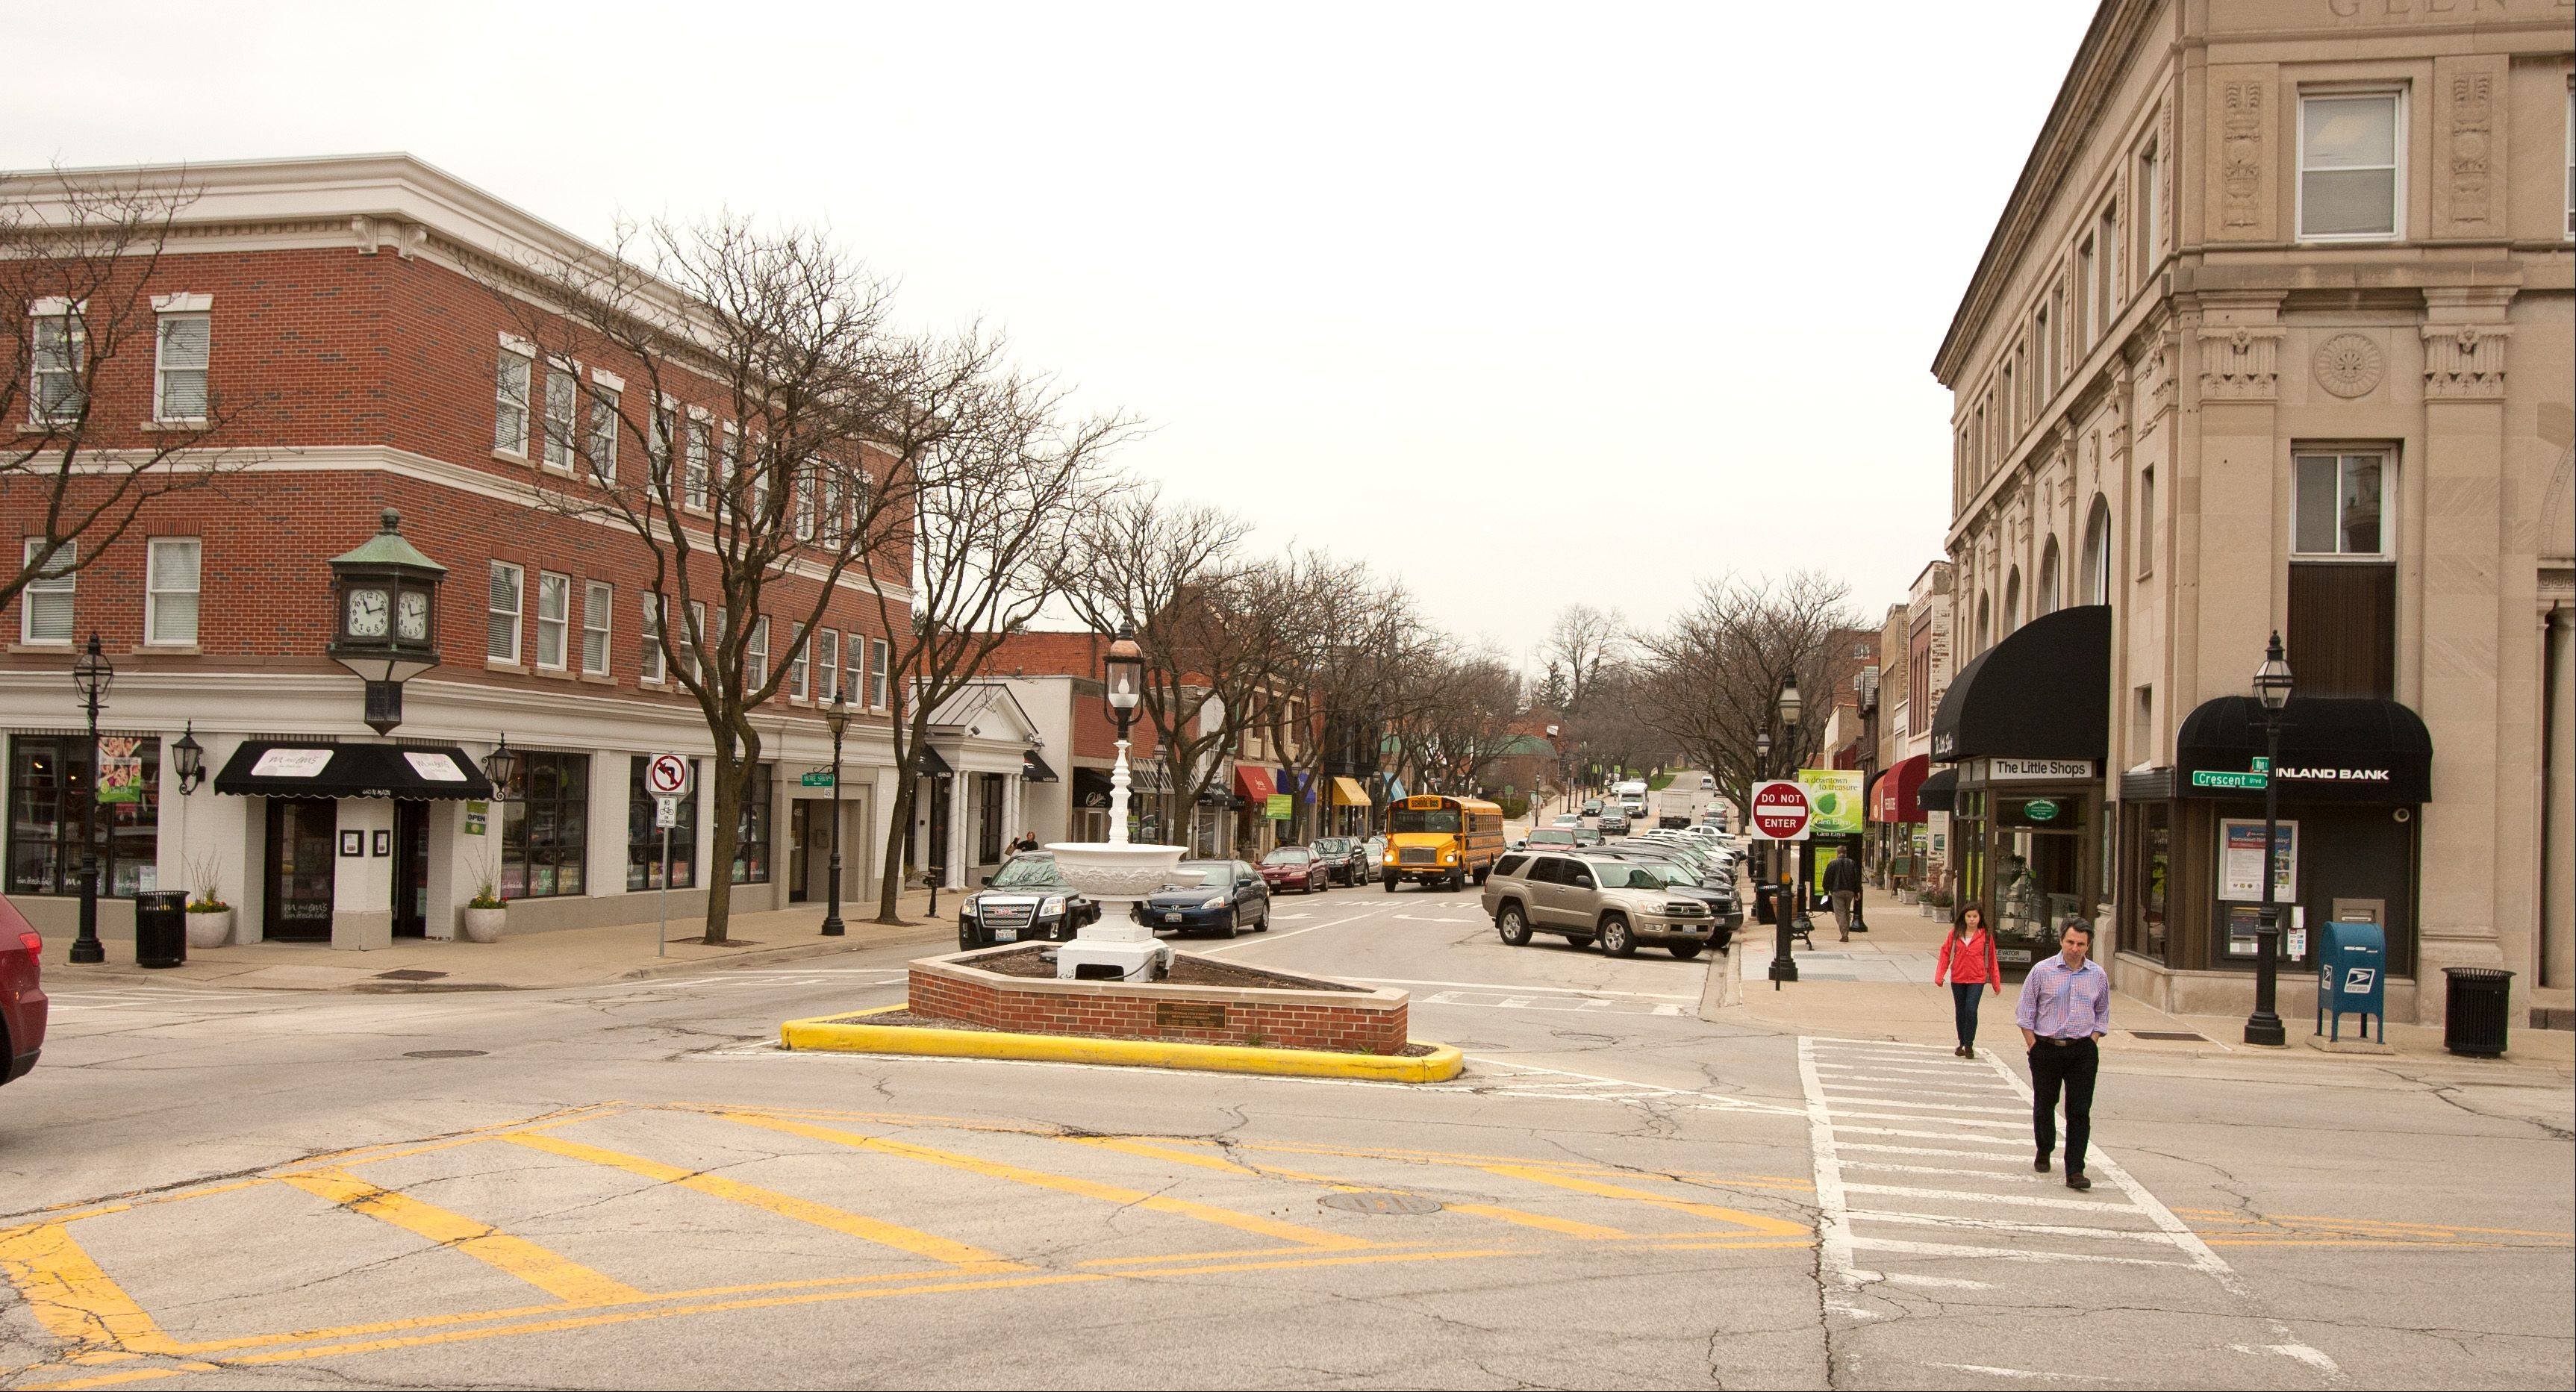 Glen Ellyn's downtown is being considered for listing on the National Register of Historic Places. The Illinois Historic Sites Advisory Council will make that determination this summer.